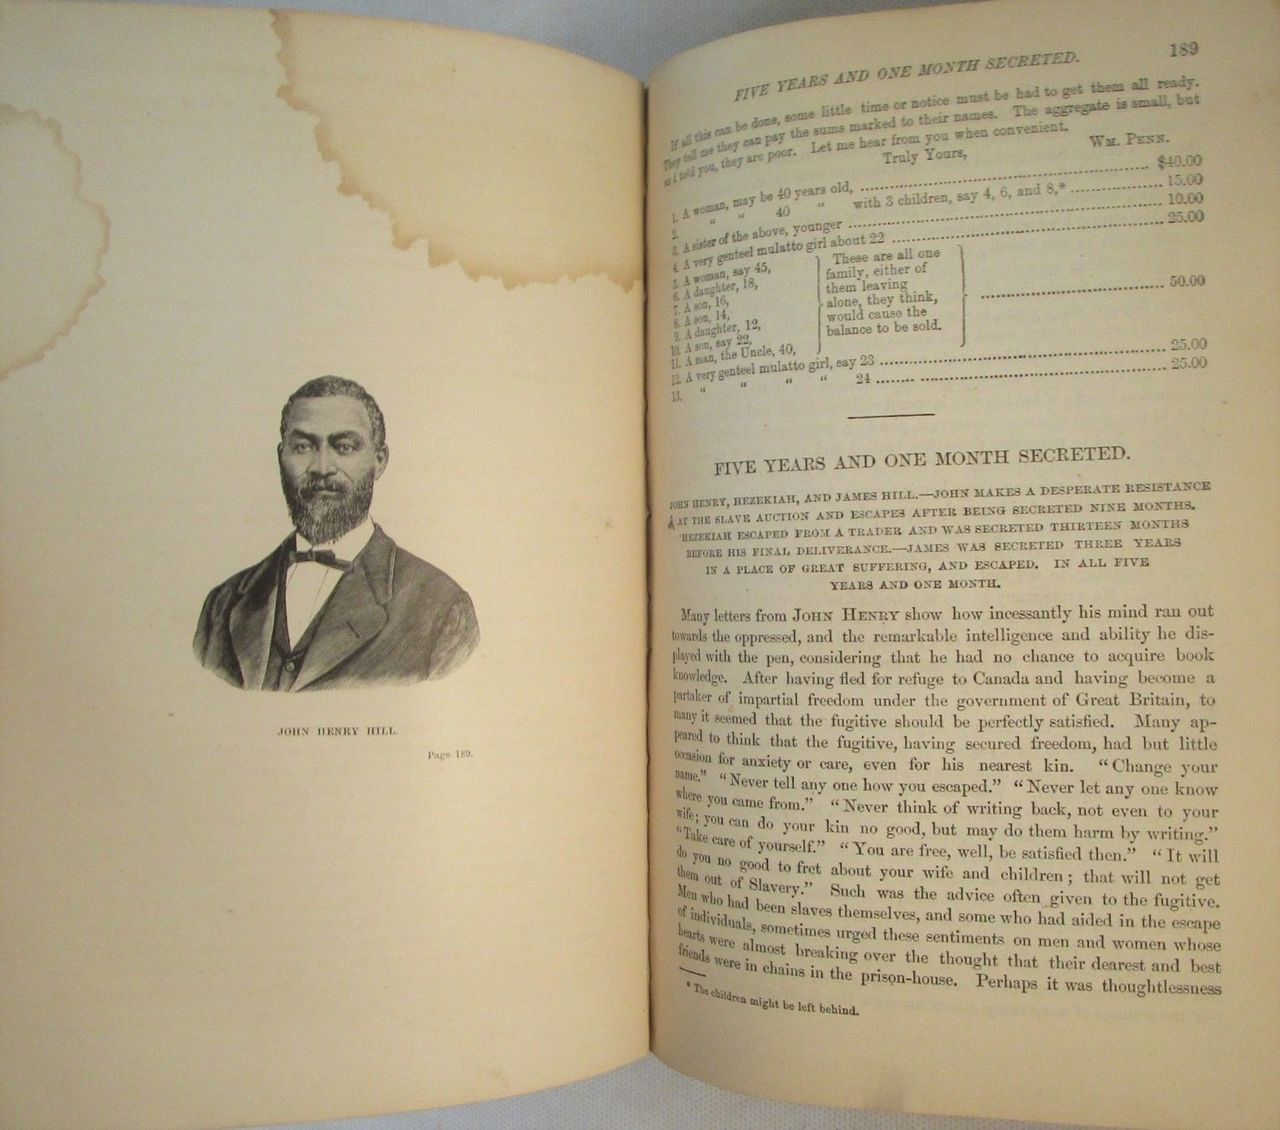 THE UNDERGROUND RAILROAD RECORDS, by William Still - 1872 [1st Ed]